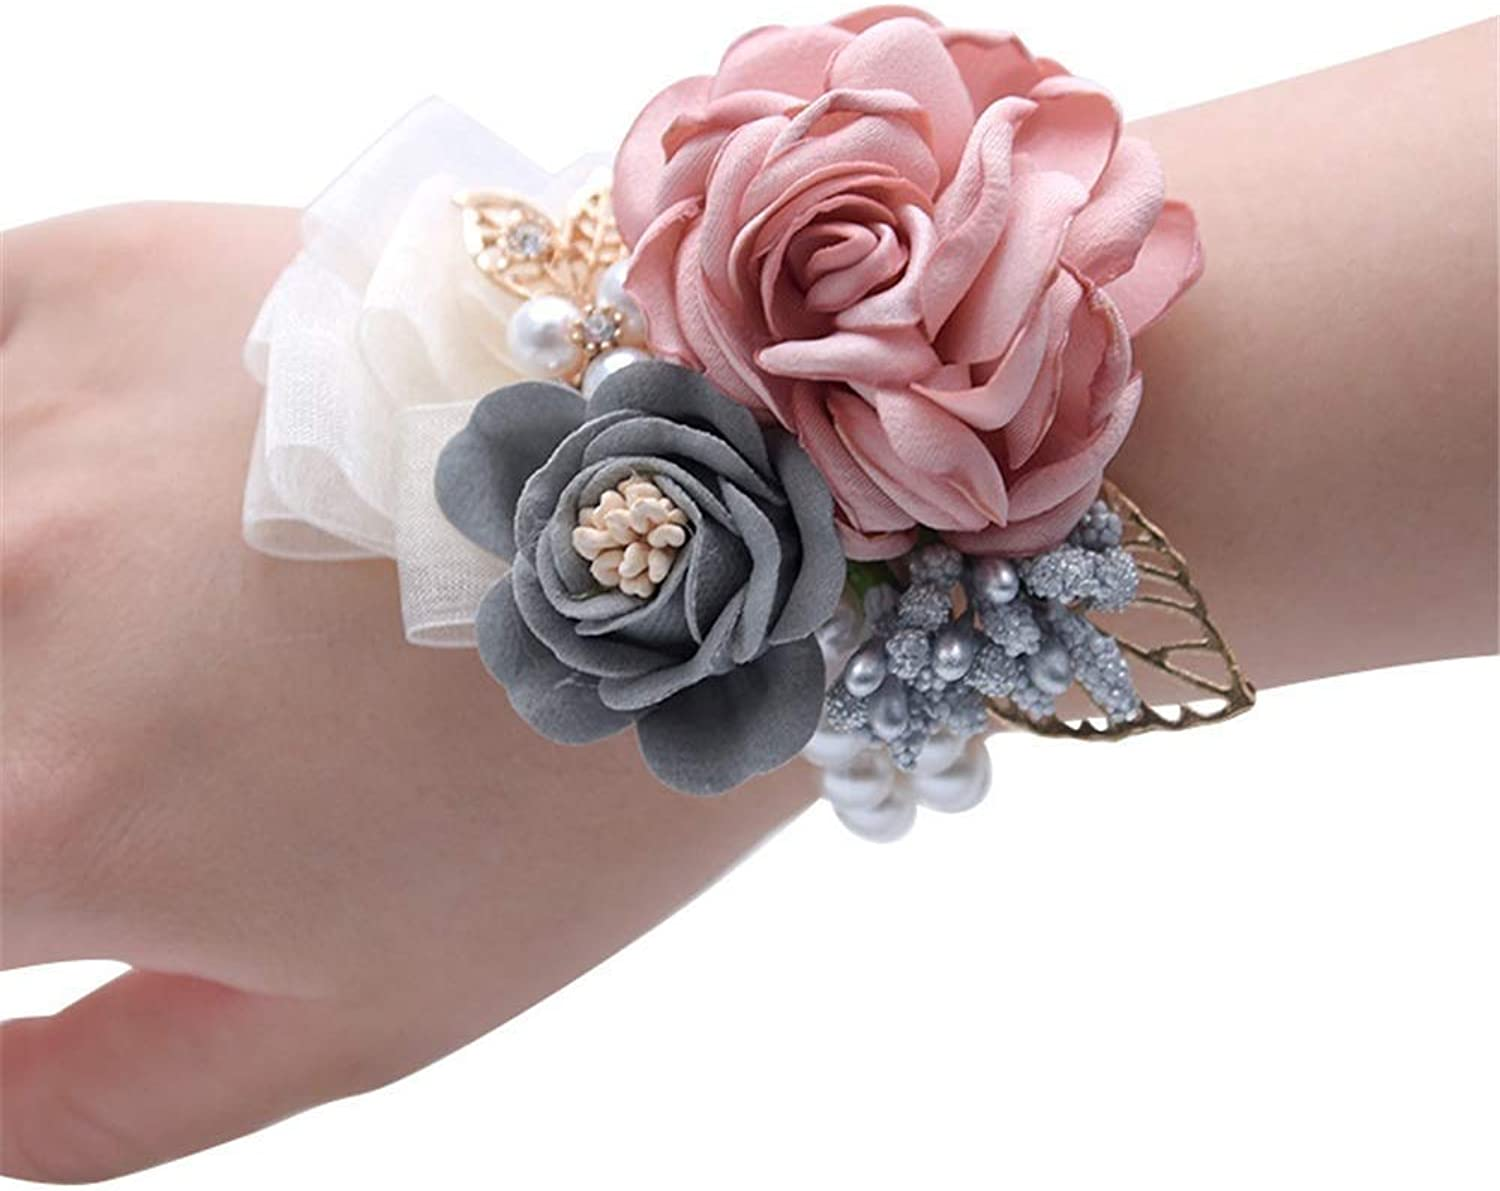 Stylish Charming Bracelet Exquisite Ornaments Flower Wrist Corsage Bracelet Silvery Bling Ribbon Rhinestone Stretch Bracelet Wedding Prom Wrist Corsage Hand Flower for Women Ladies Girls Prom Party